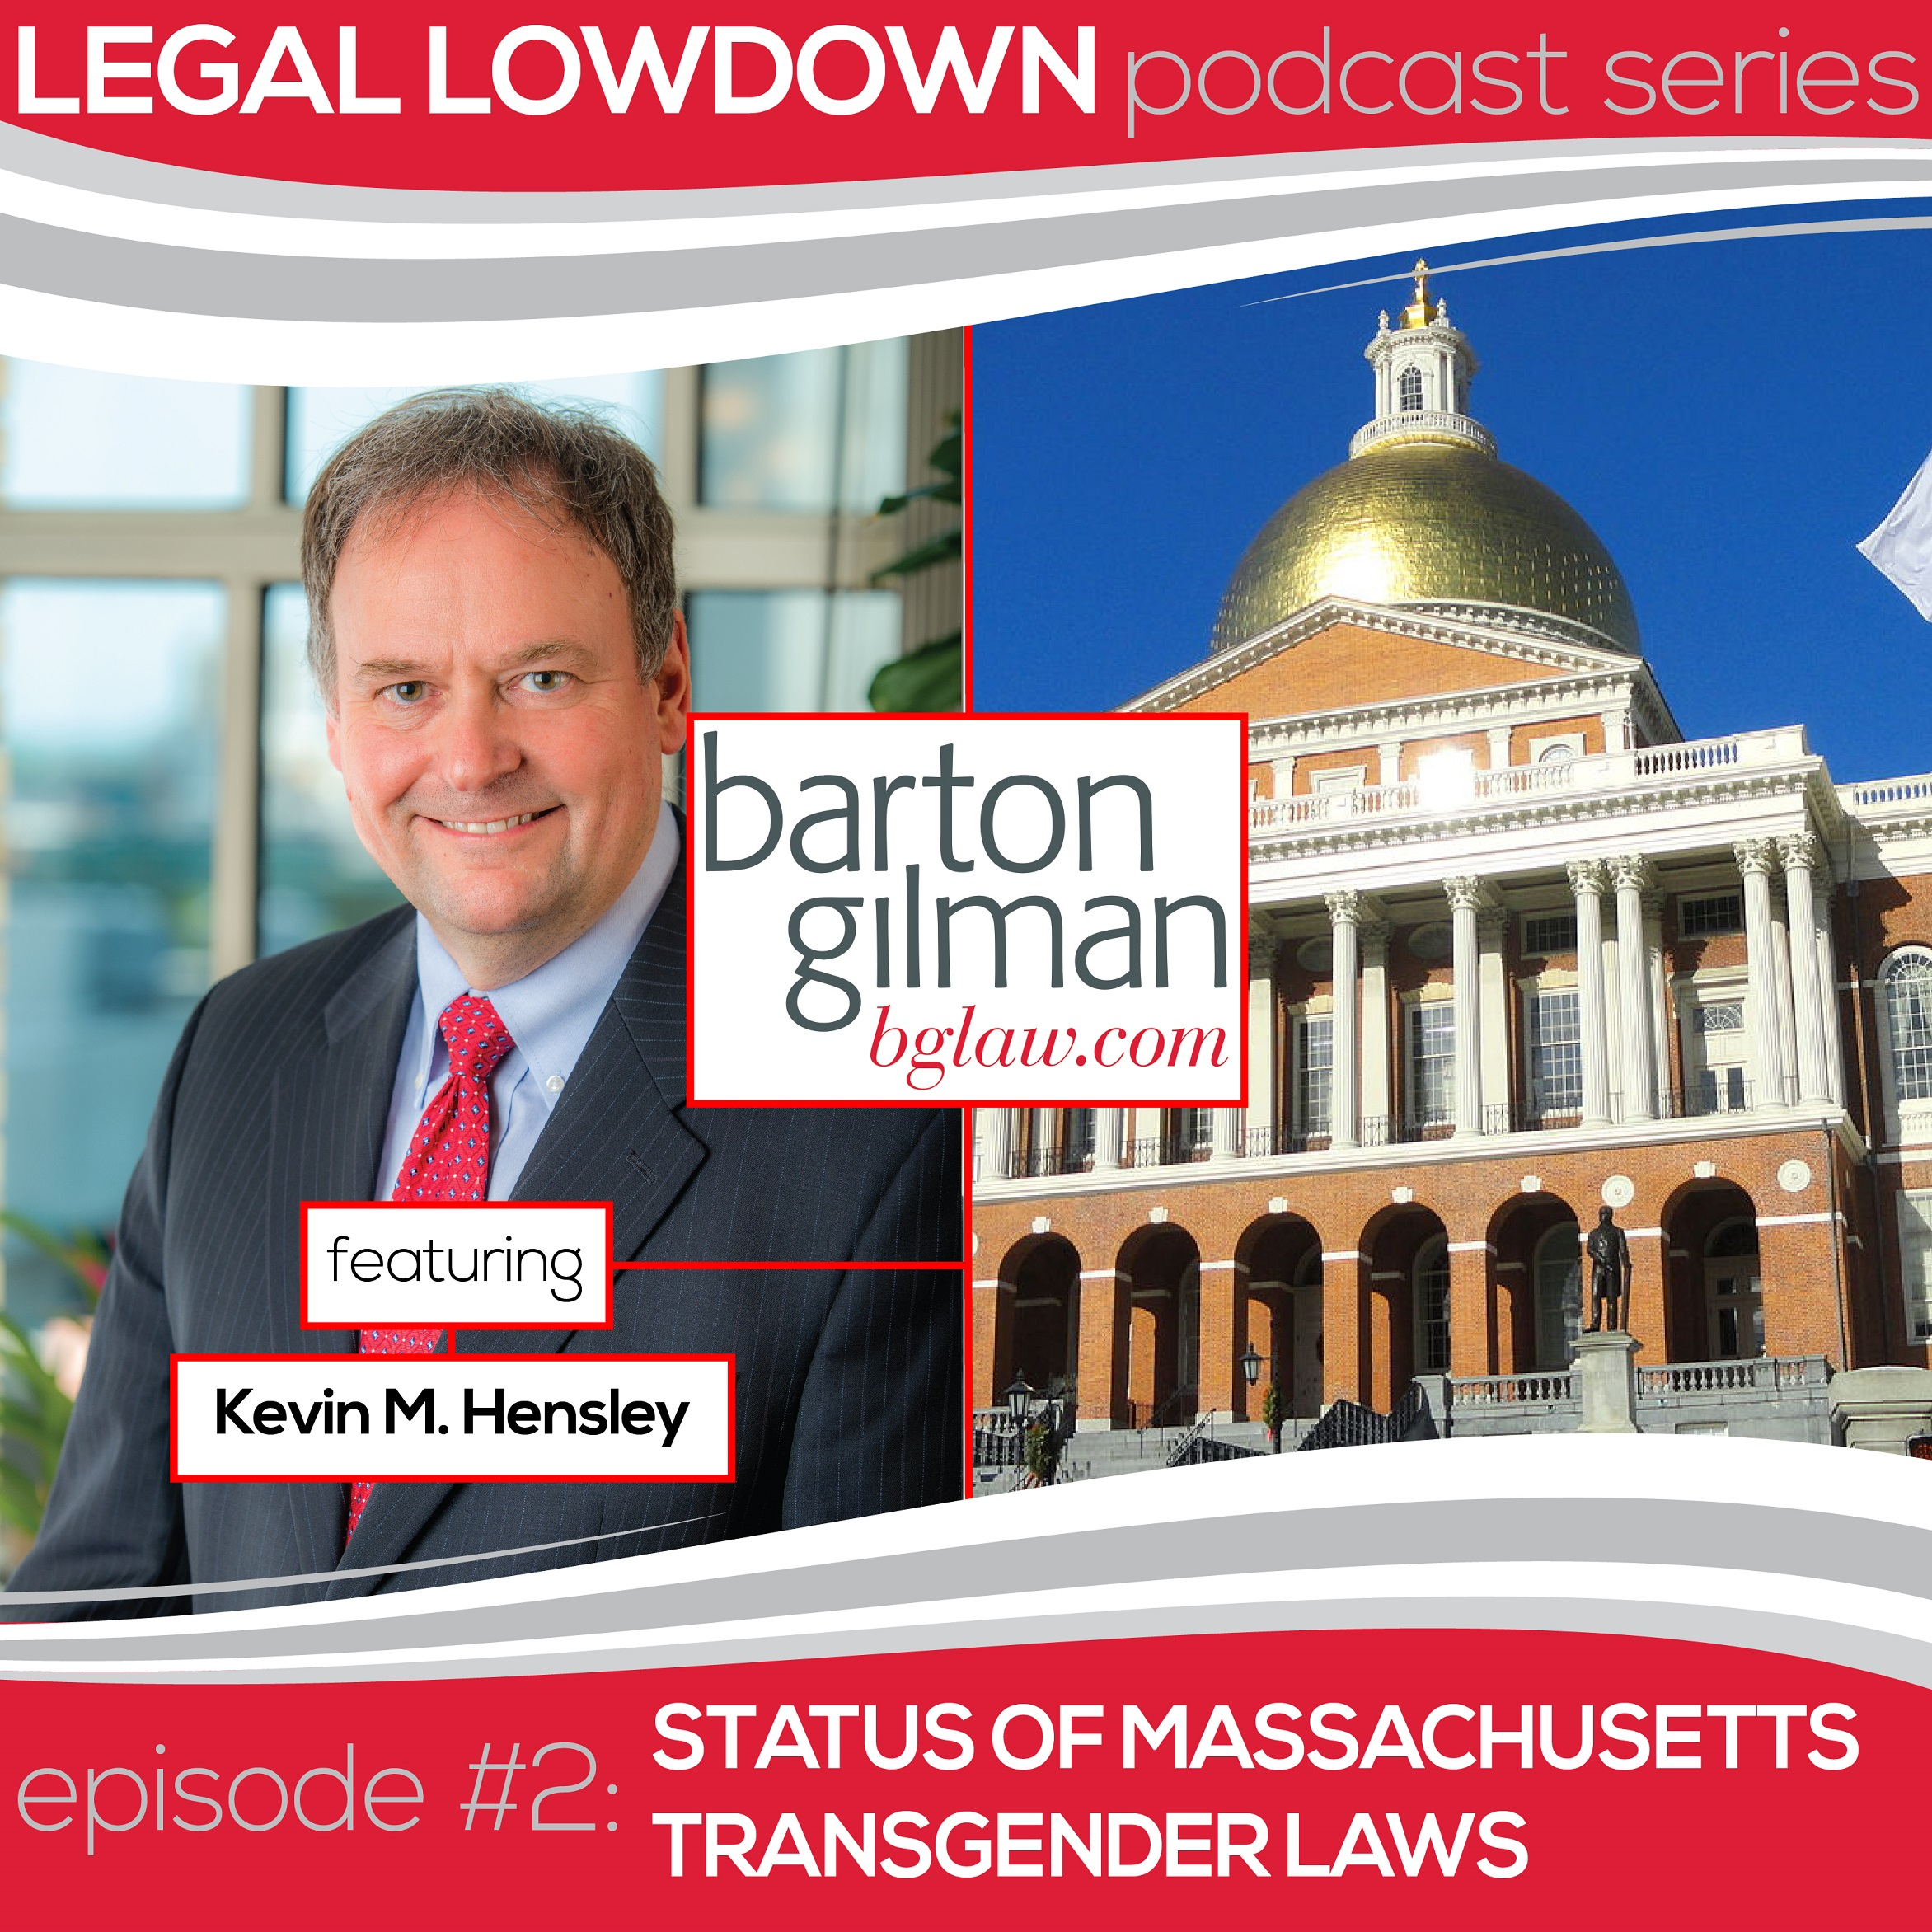 Legal Lowdown Podcast – Episode #2 – Status of Massachusetts Transgender Laws